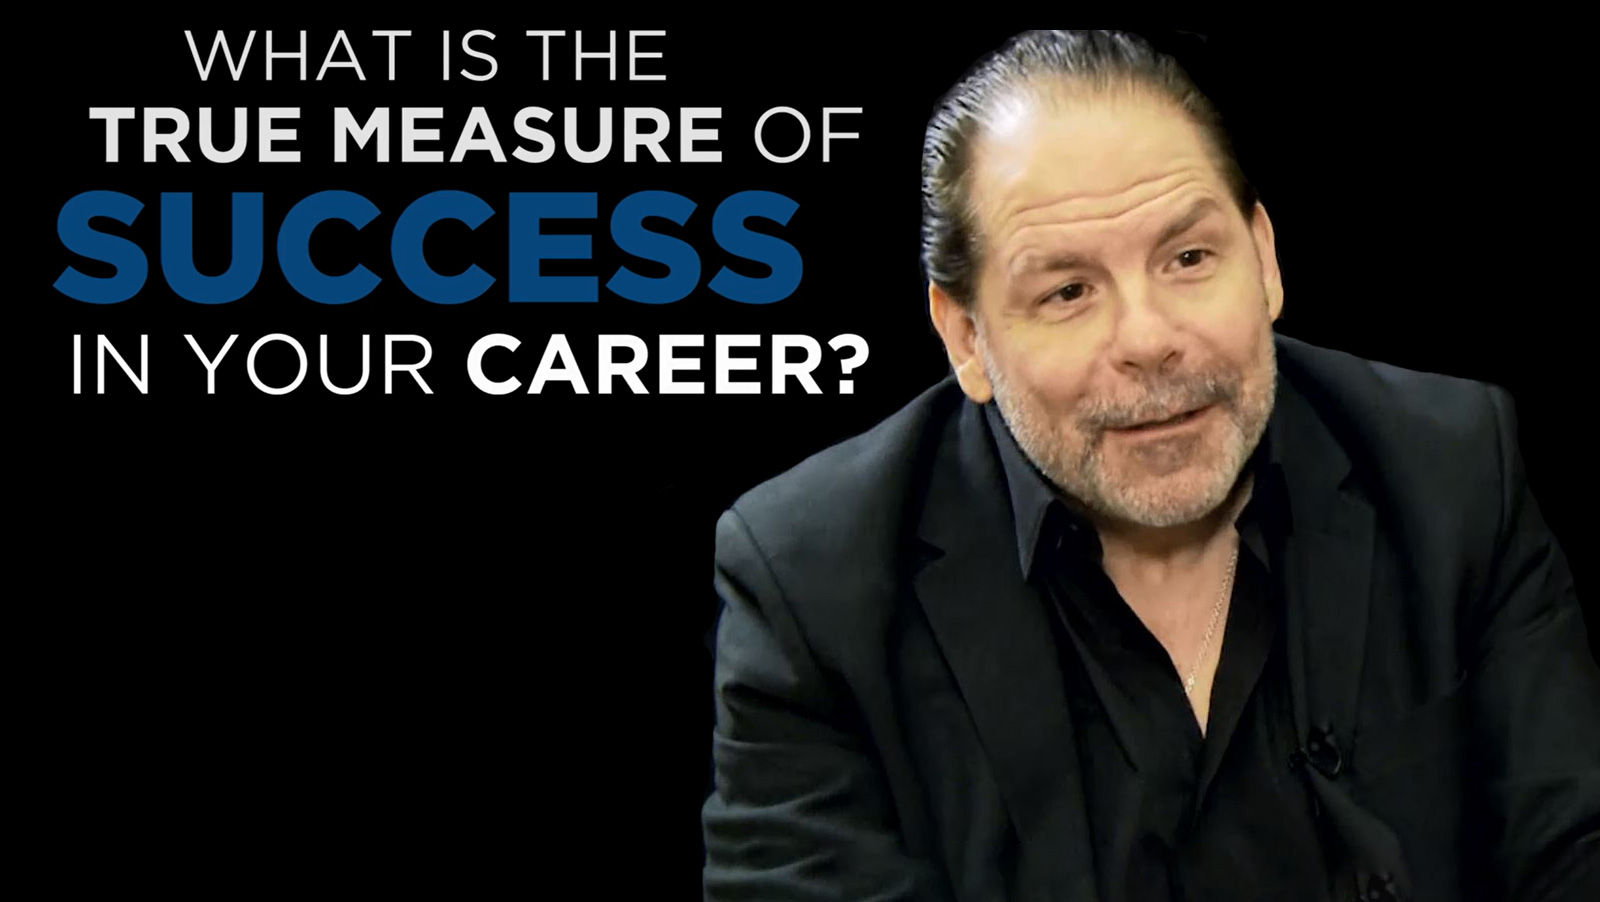 John English: Shared Experience - What is the True Measure of Success on your Career?